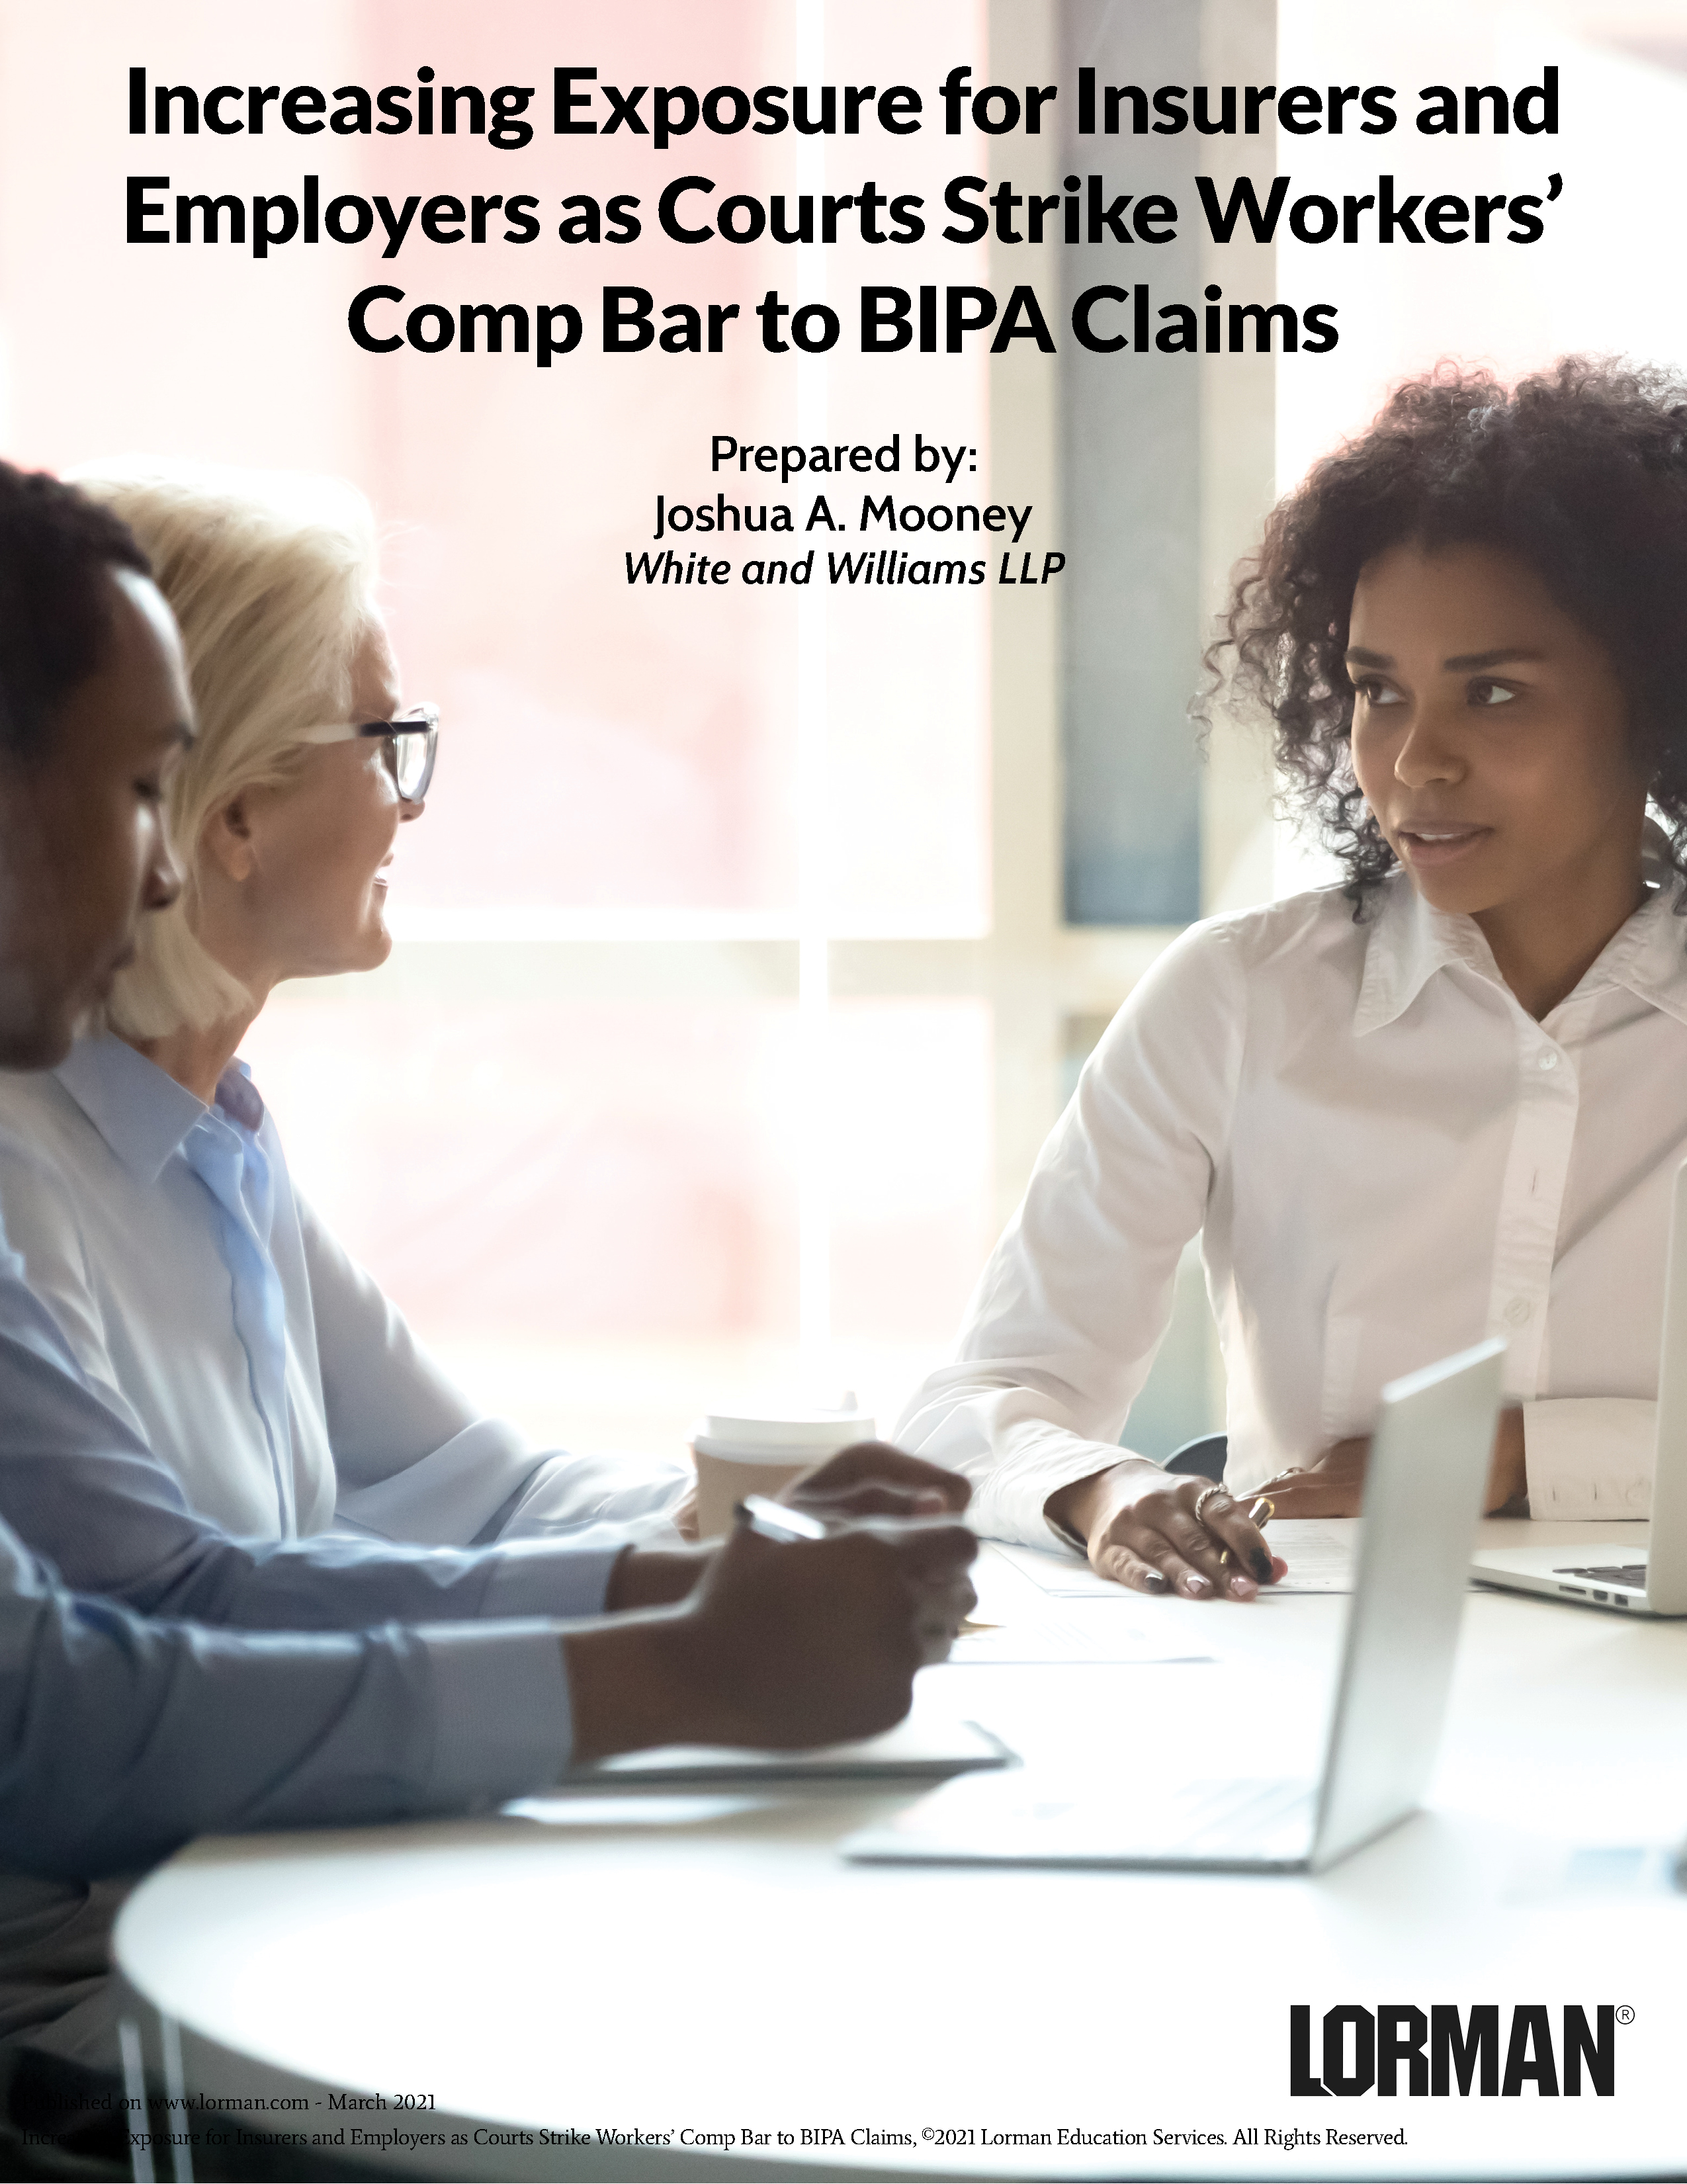 Increasing Exposure for Insurers and Employers as Courts Strike Workers' Comp Bar to BIPA Claims